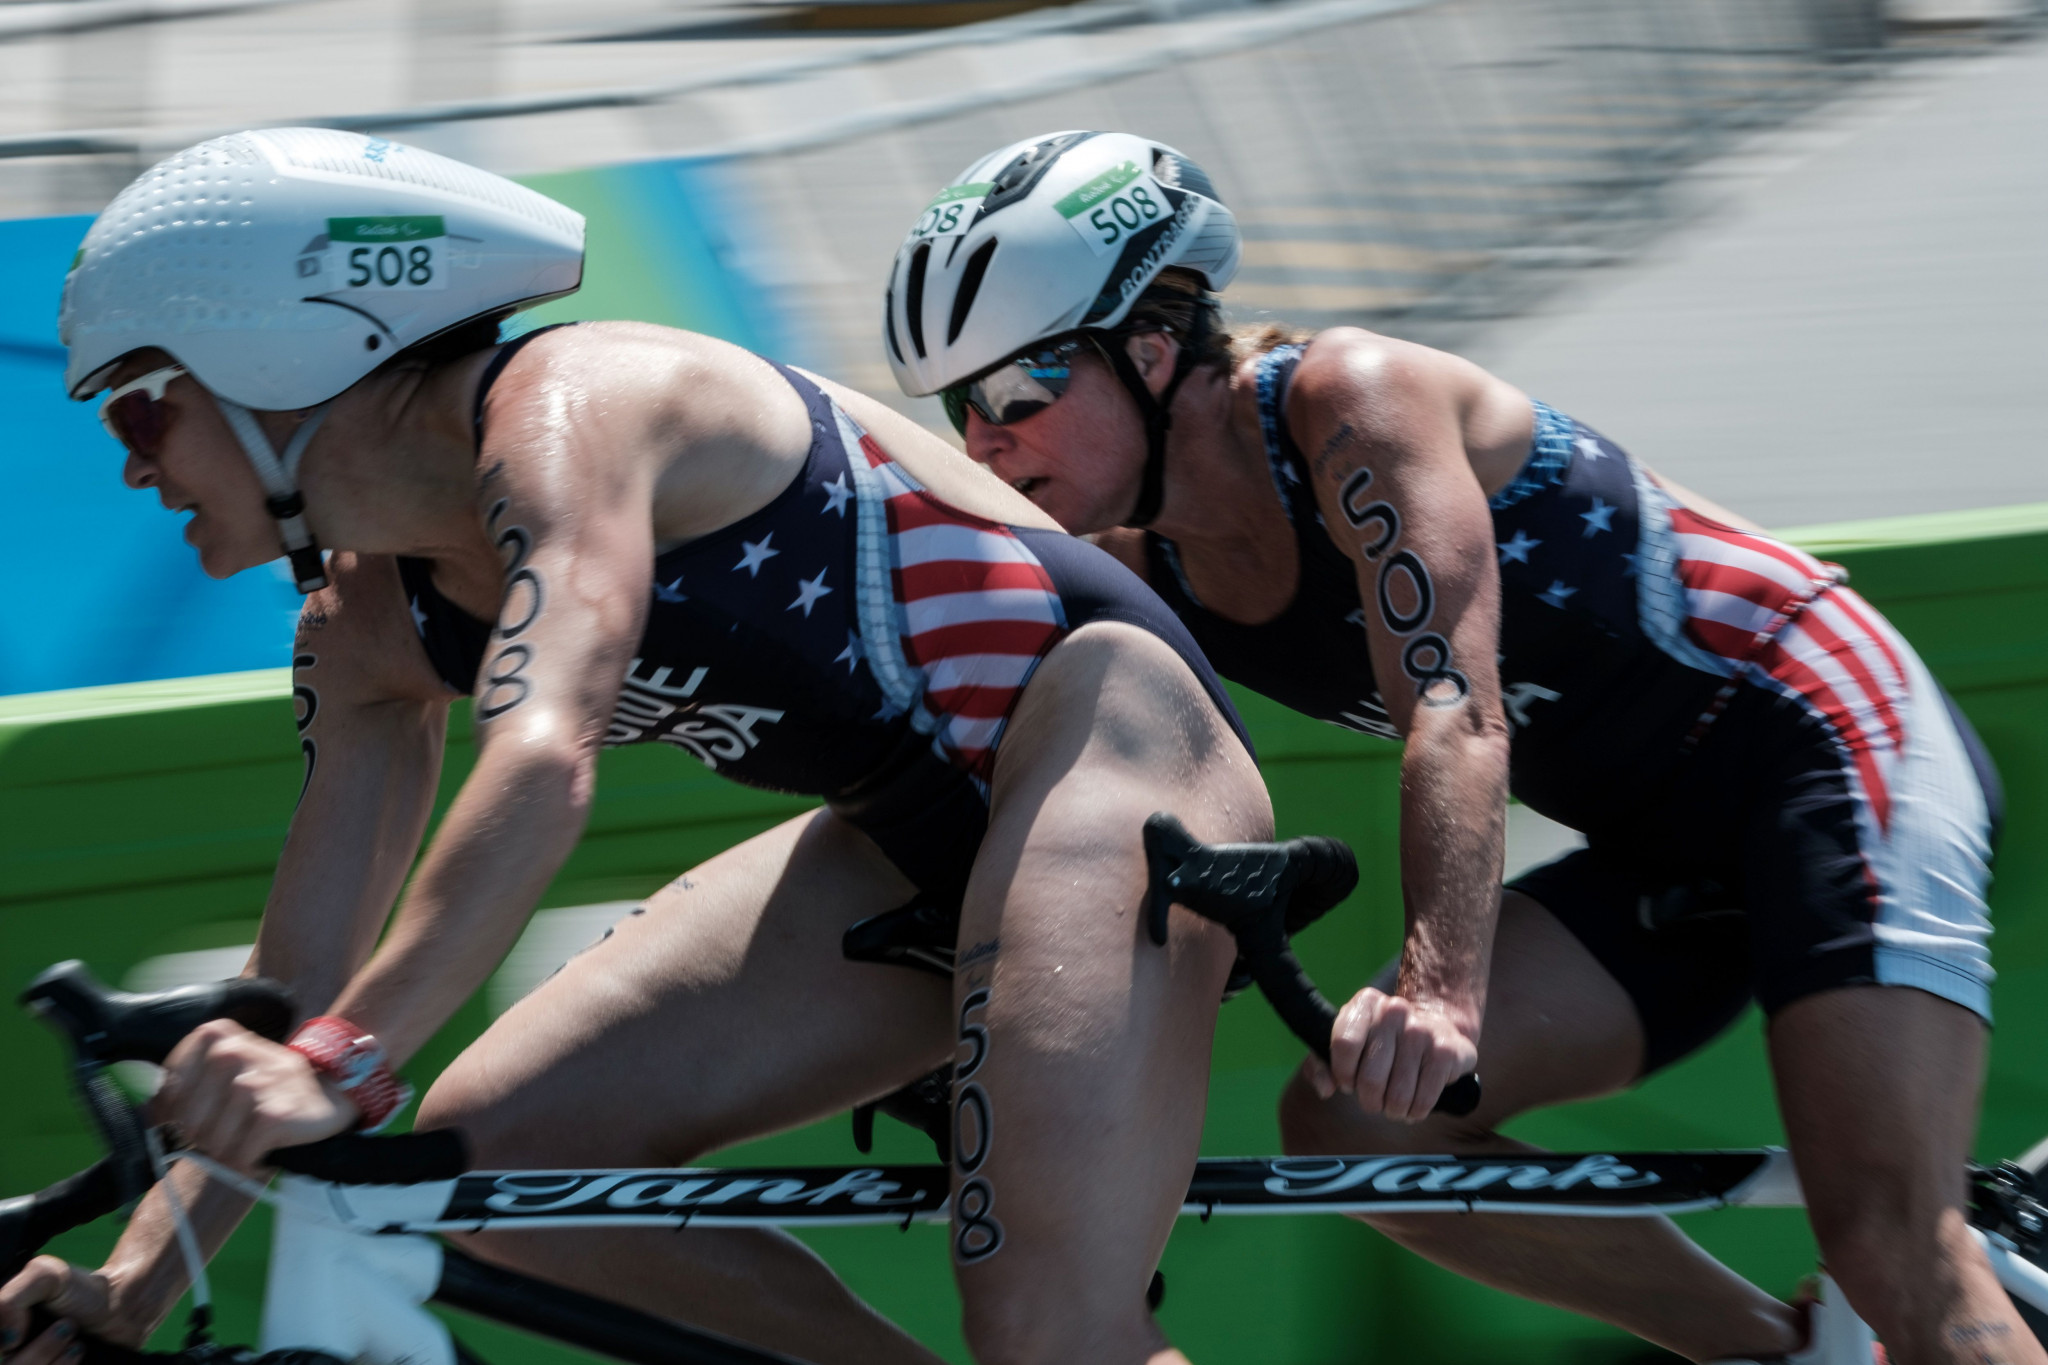 It is hoped offering prize money at the Paratriathlon National Championships will create a watershed moment for the sport in the United States ©Getty Images